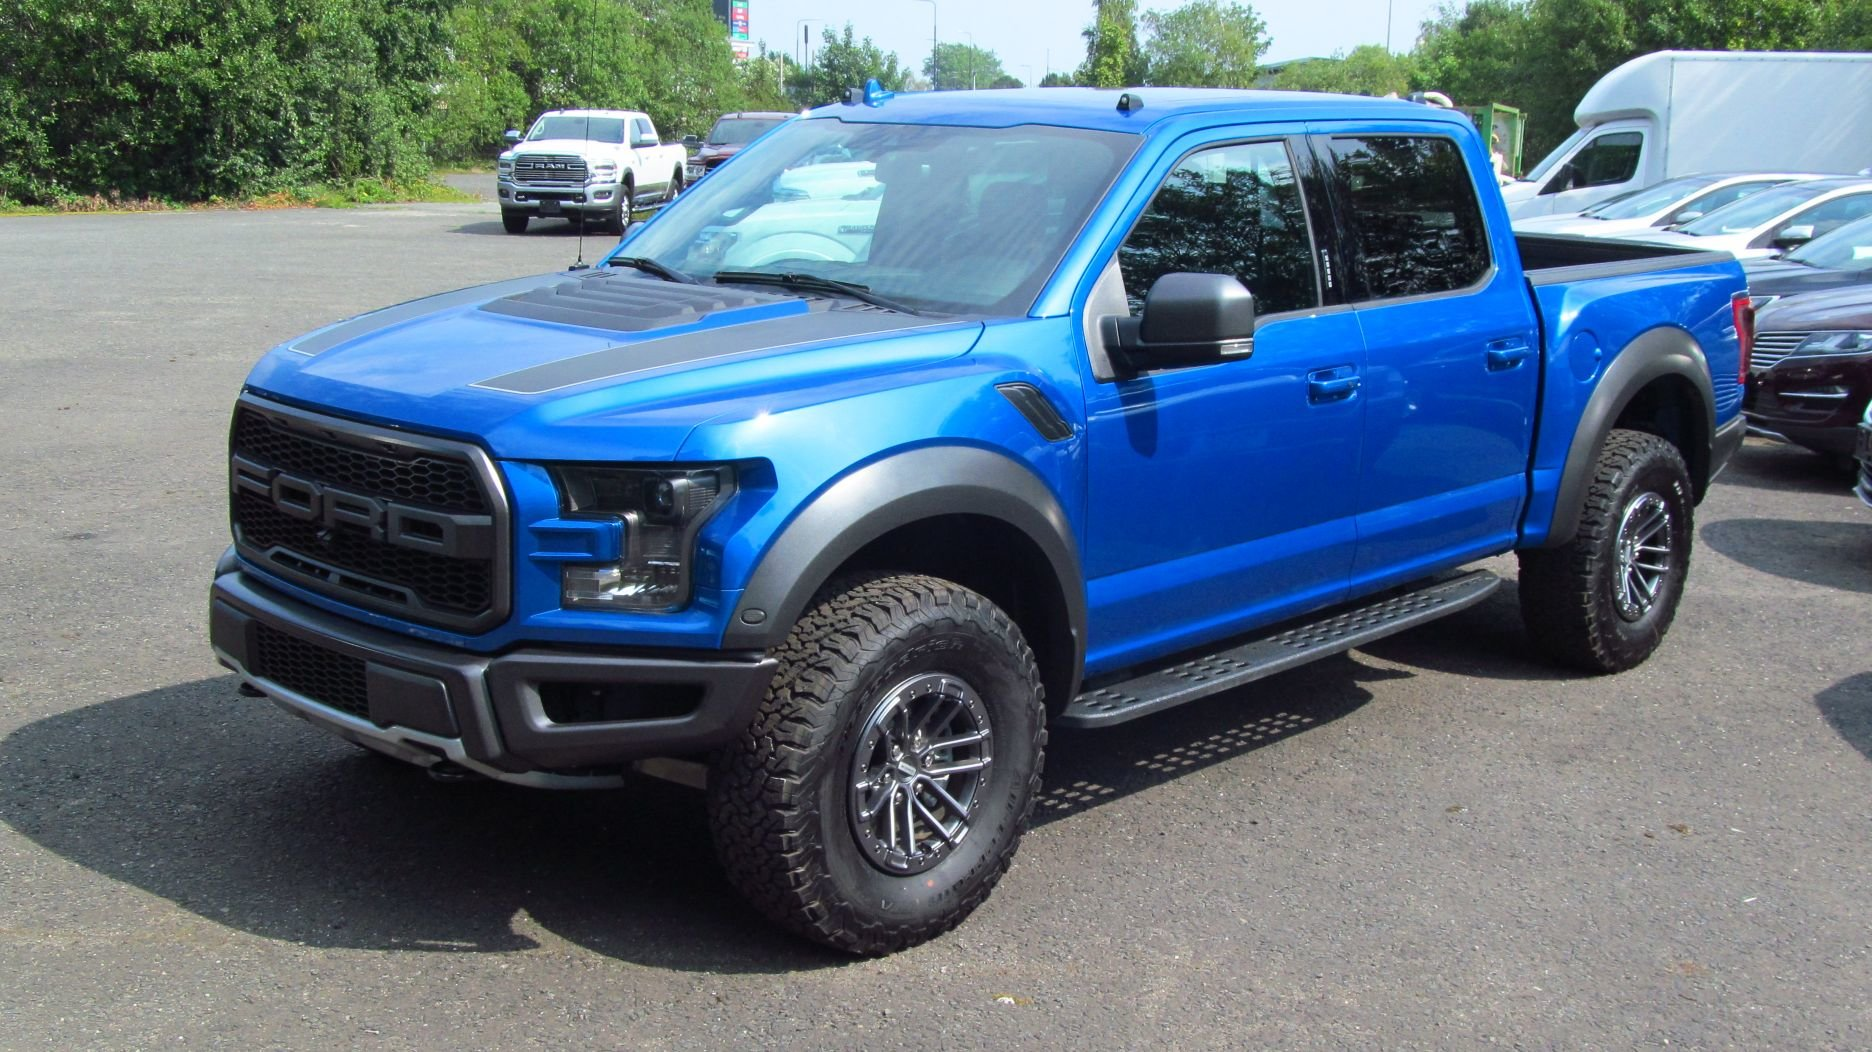 2019 NEW September reg Ford F-150 RAPTOR For Sale (picture 1 of 6)